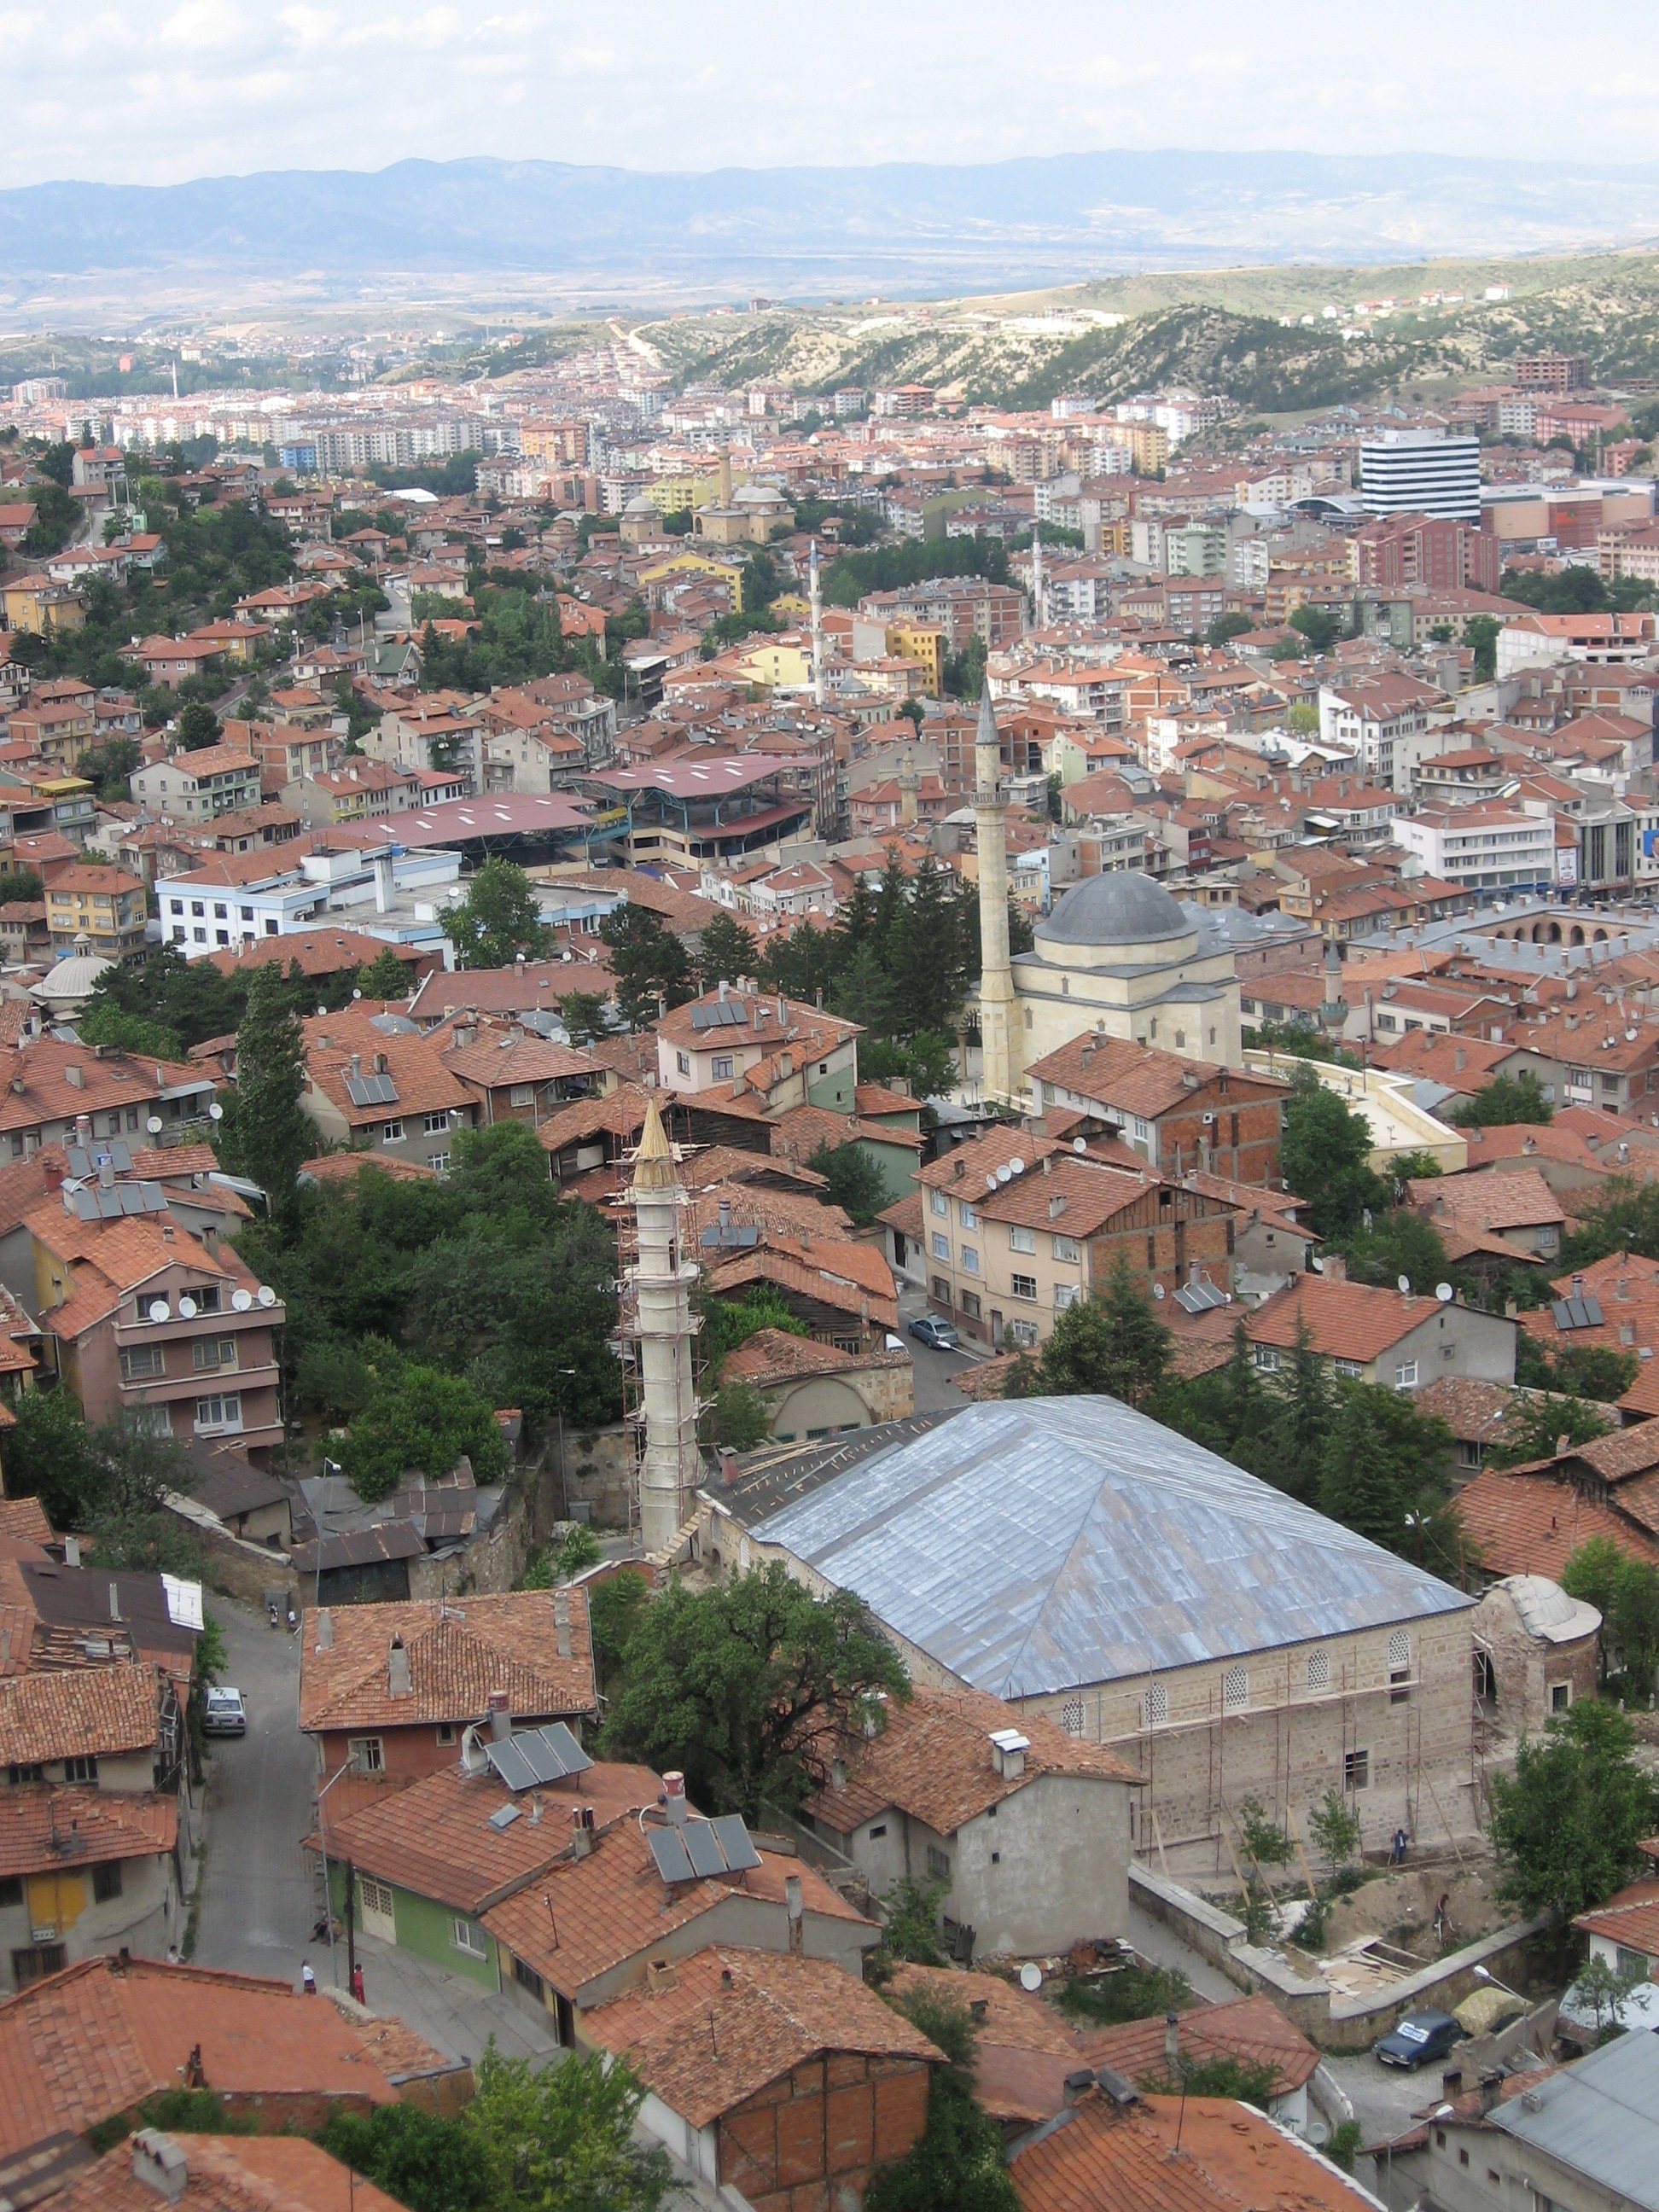 File:Kastamonu from above.jpg - Wikimedia Commons